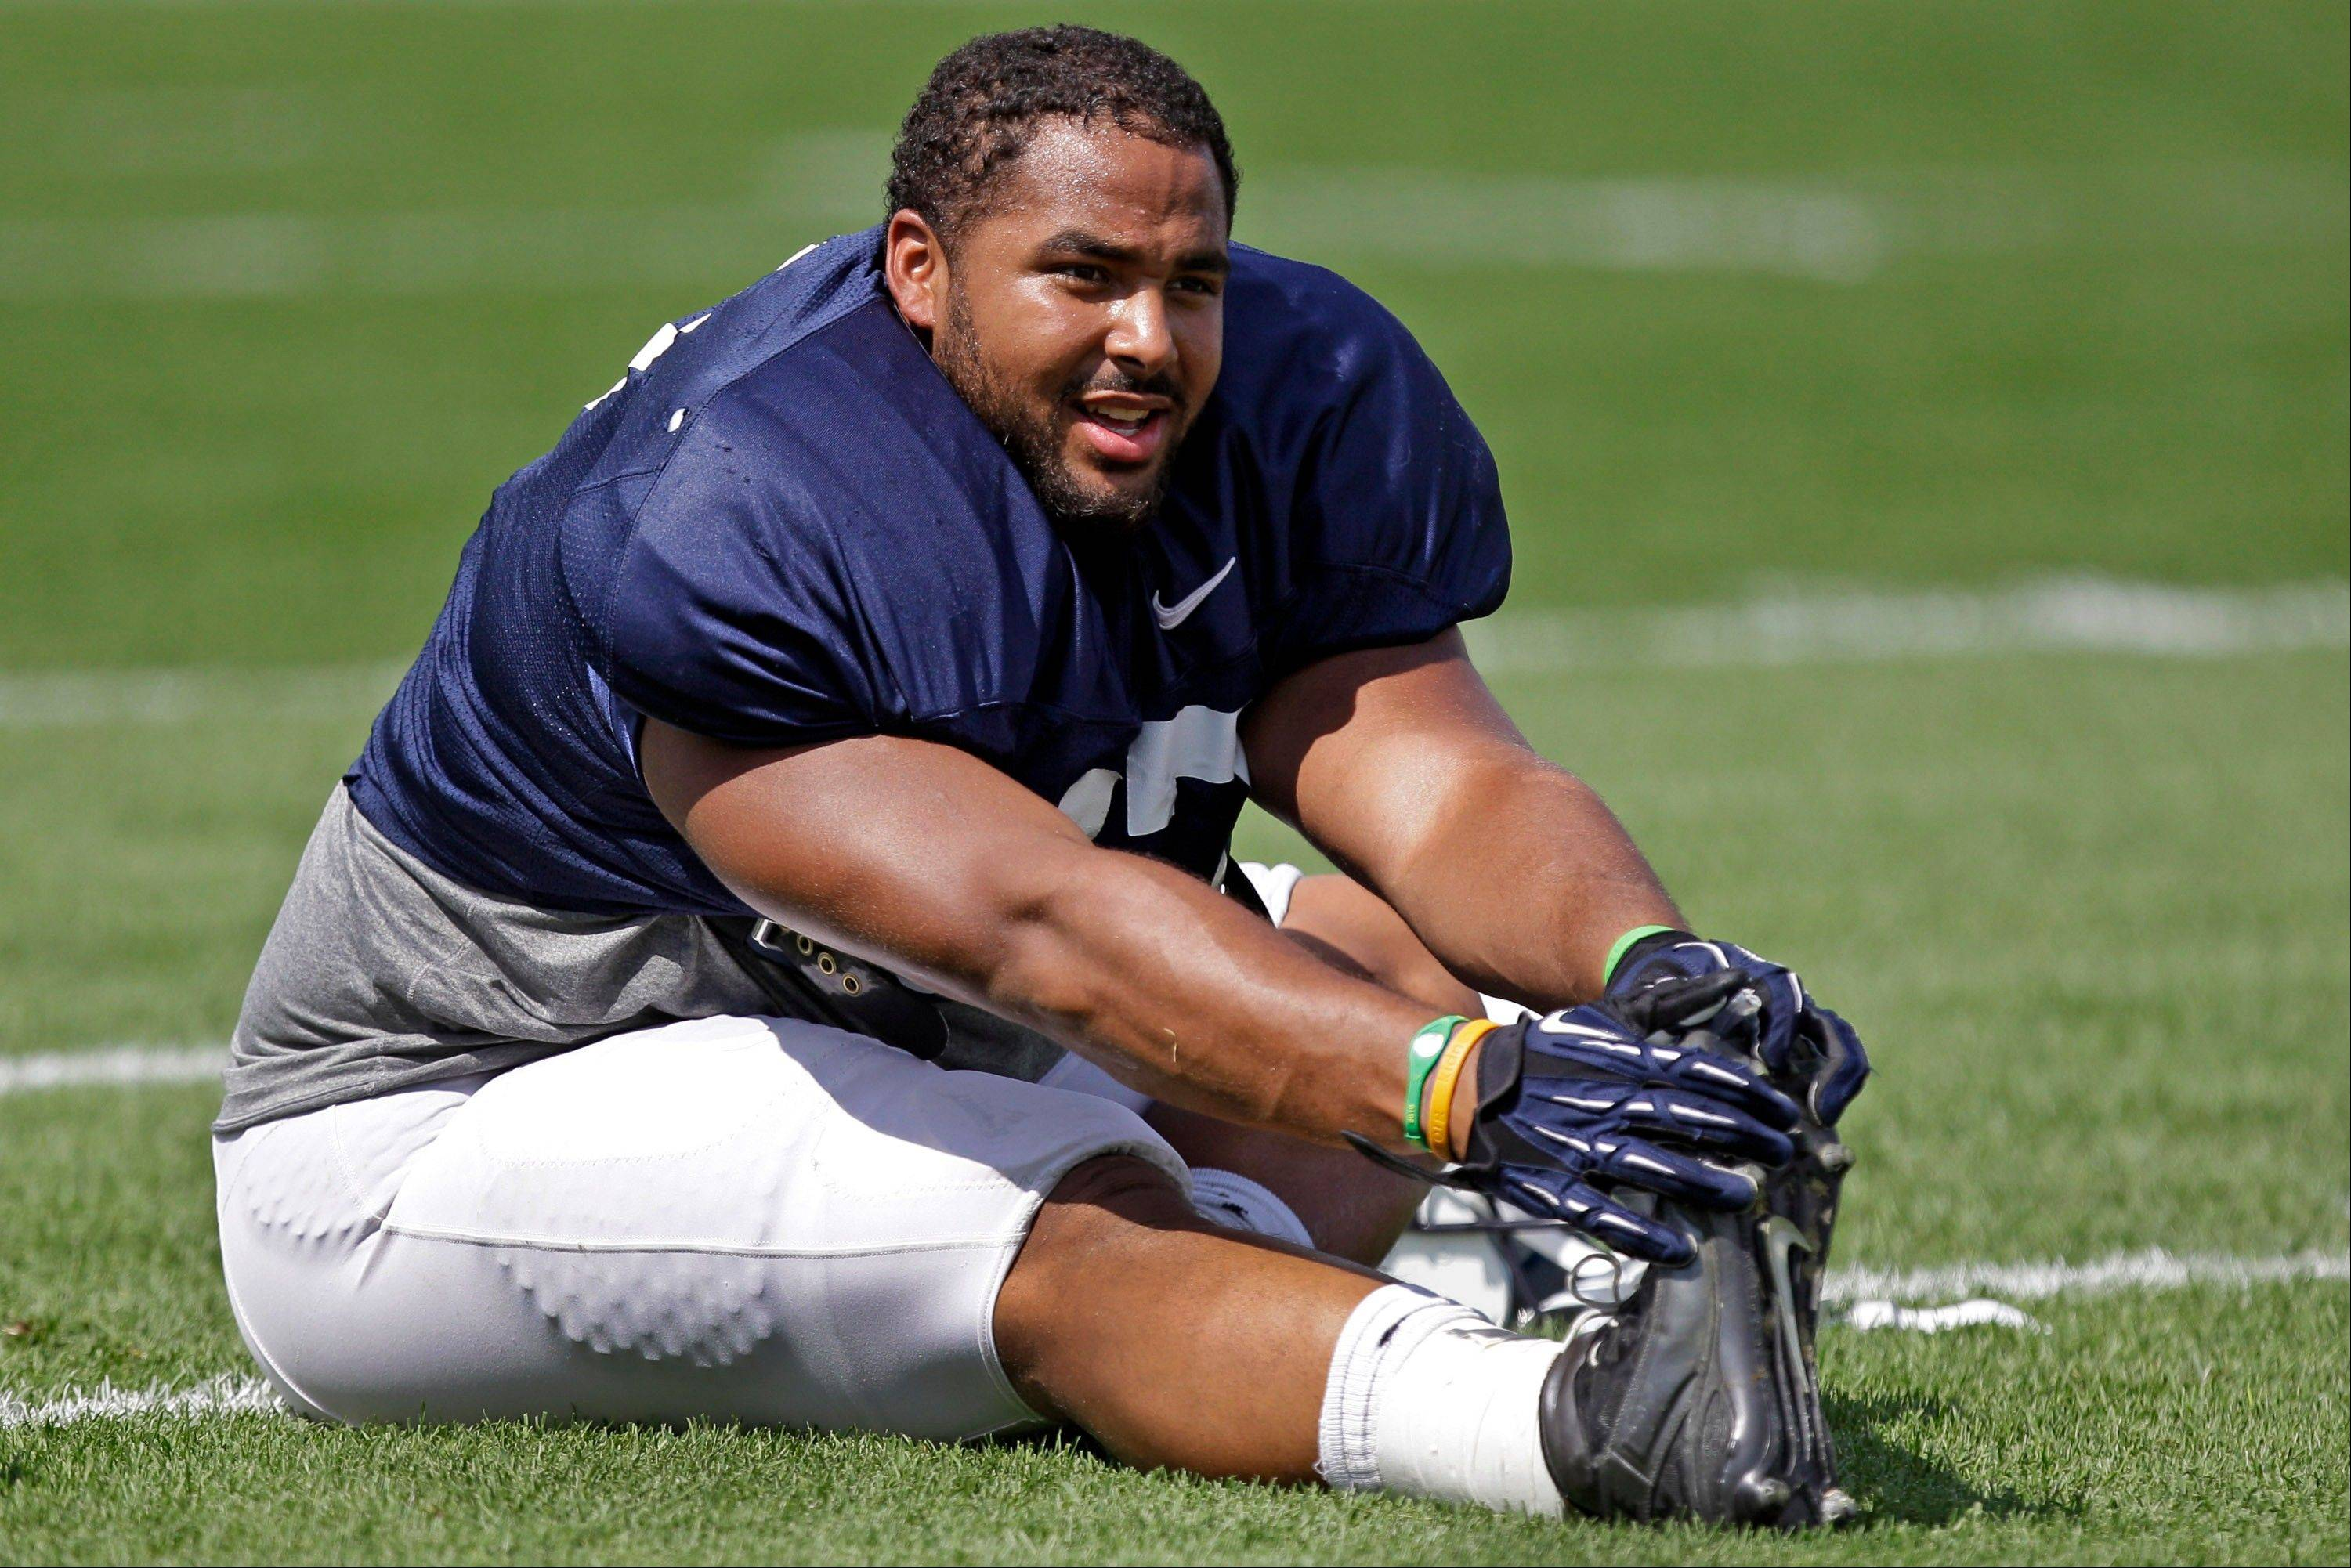 Quiet and laid back, Penn State defensive tackle Jordan Hill flashes an easygoing smile. The friendly personality makes it hard to dislike the Penn State defensive tackle -- unless, of course, you're an opposing offensive lineman constantly getting steamrollered by him on the field.